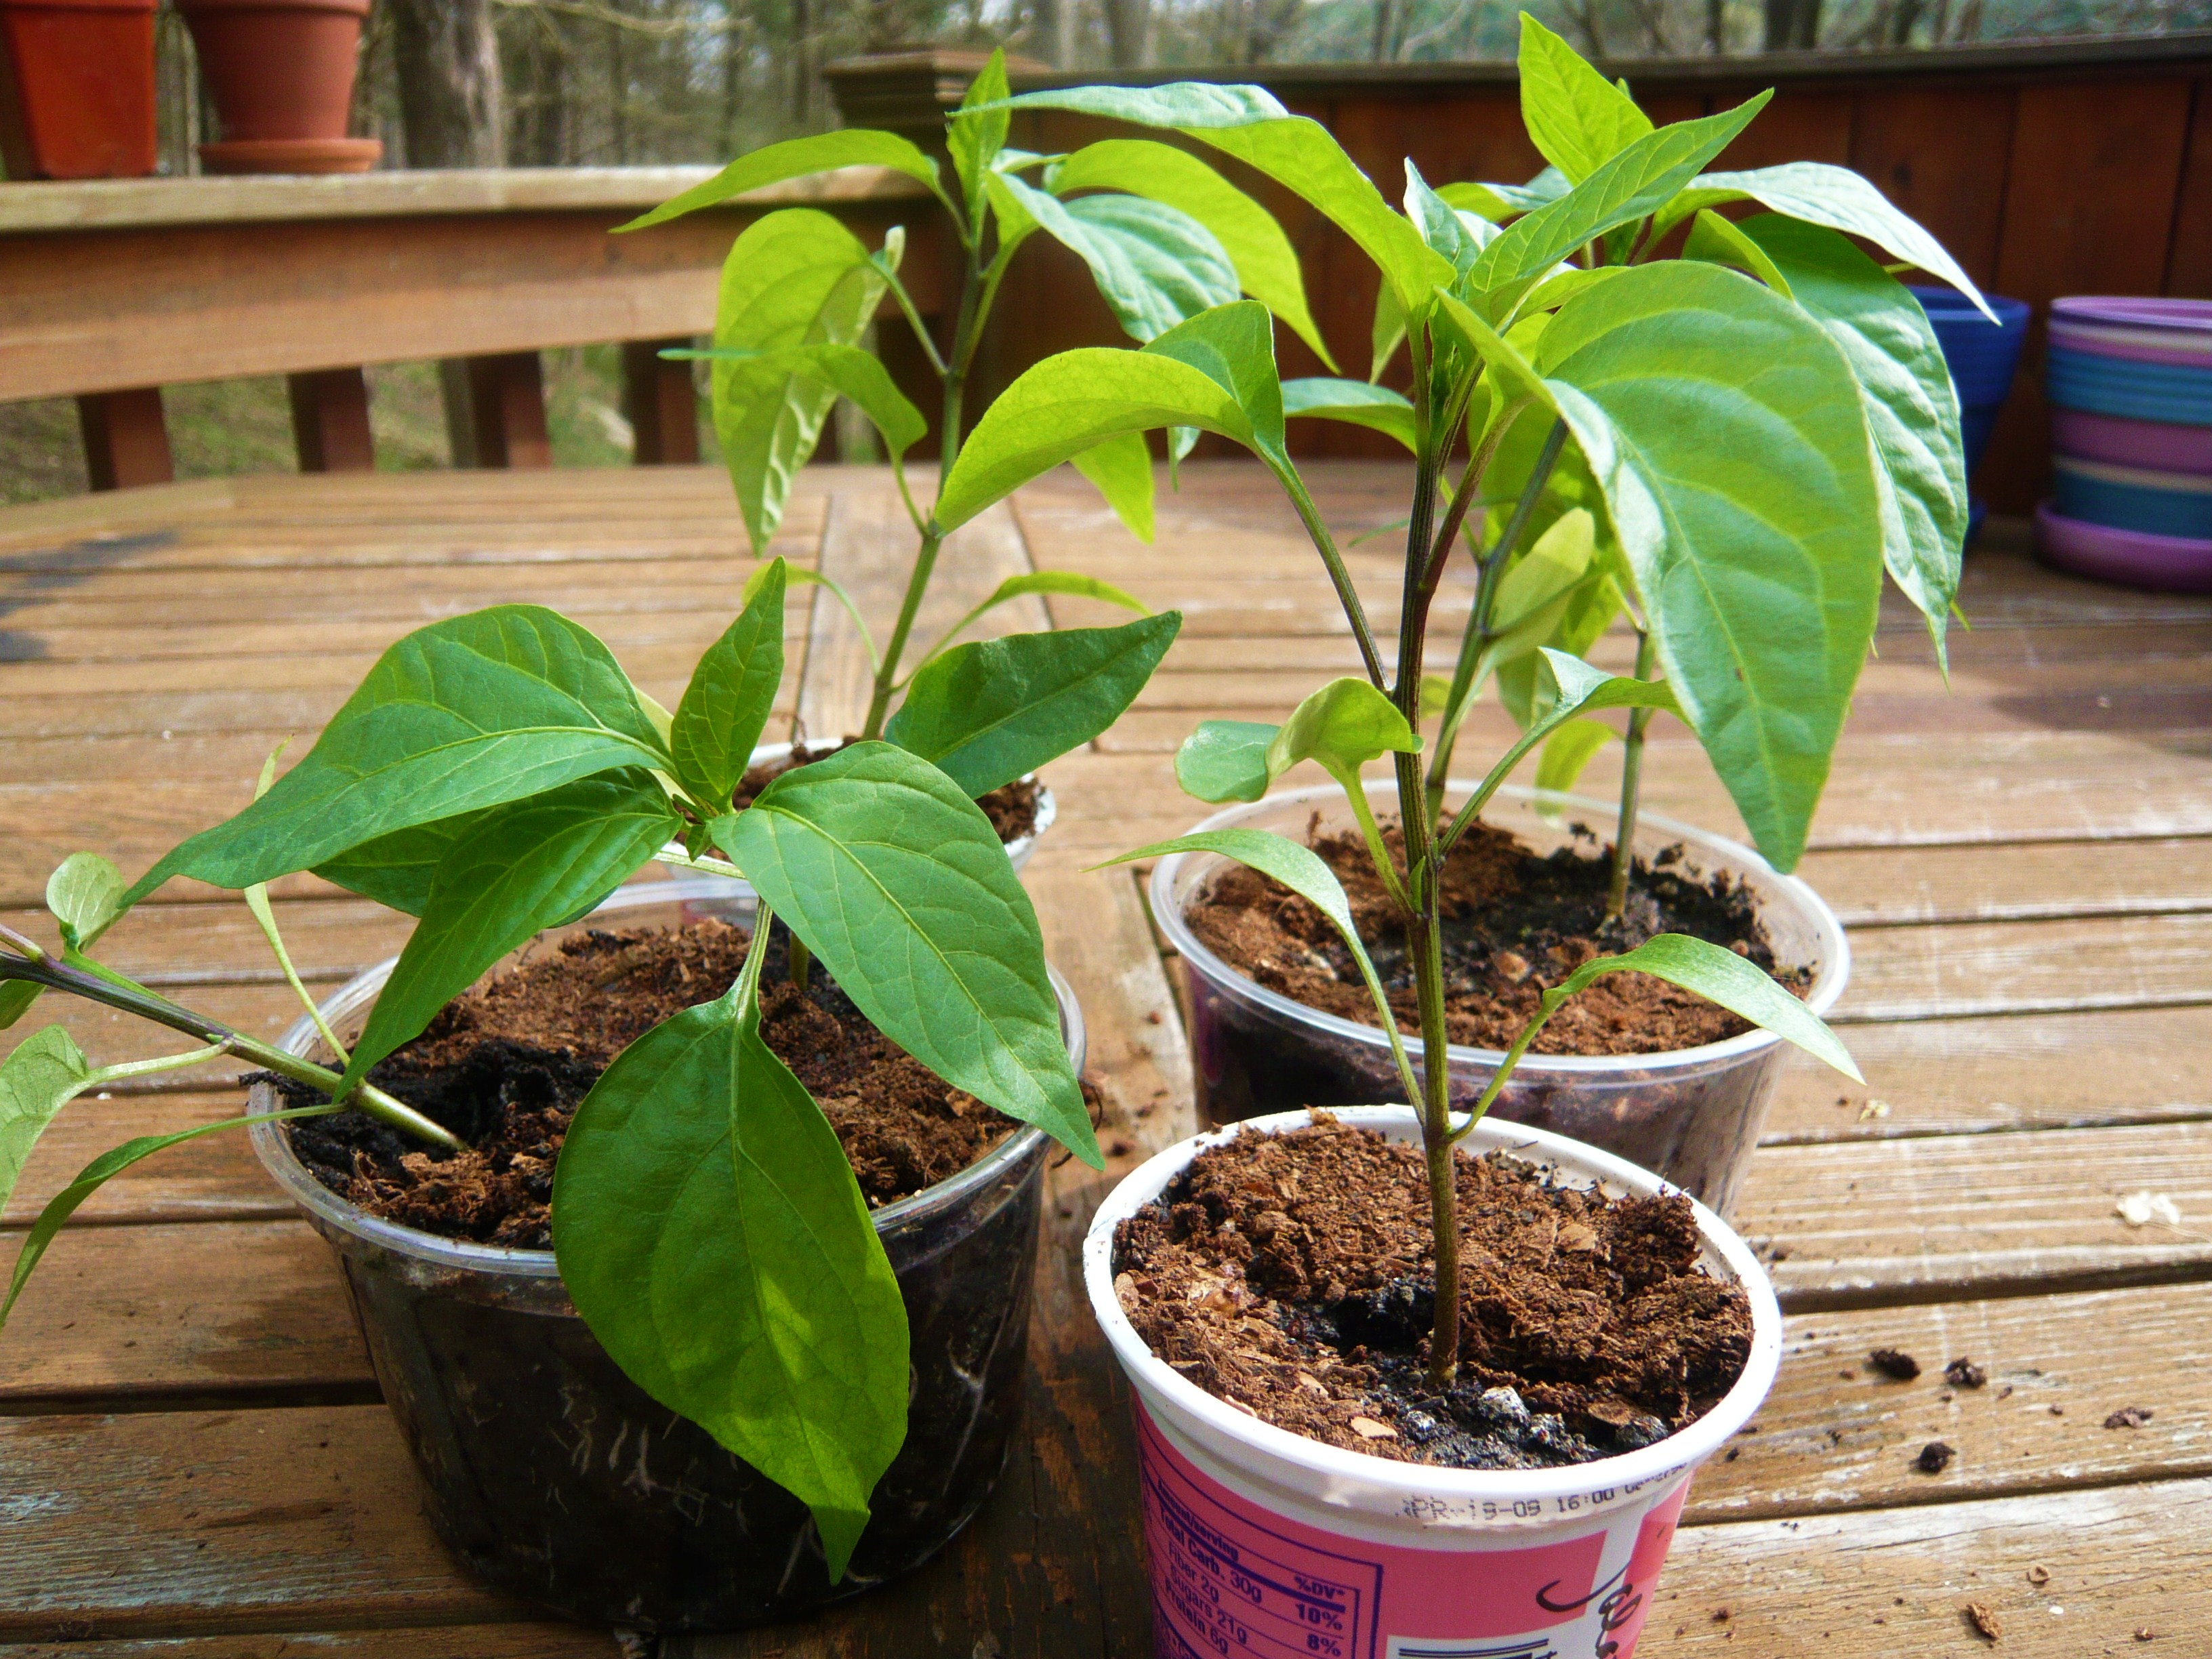 Jalapeno pepper seedlings.